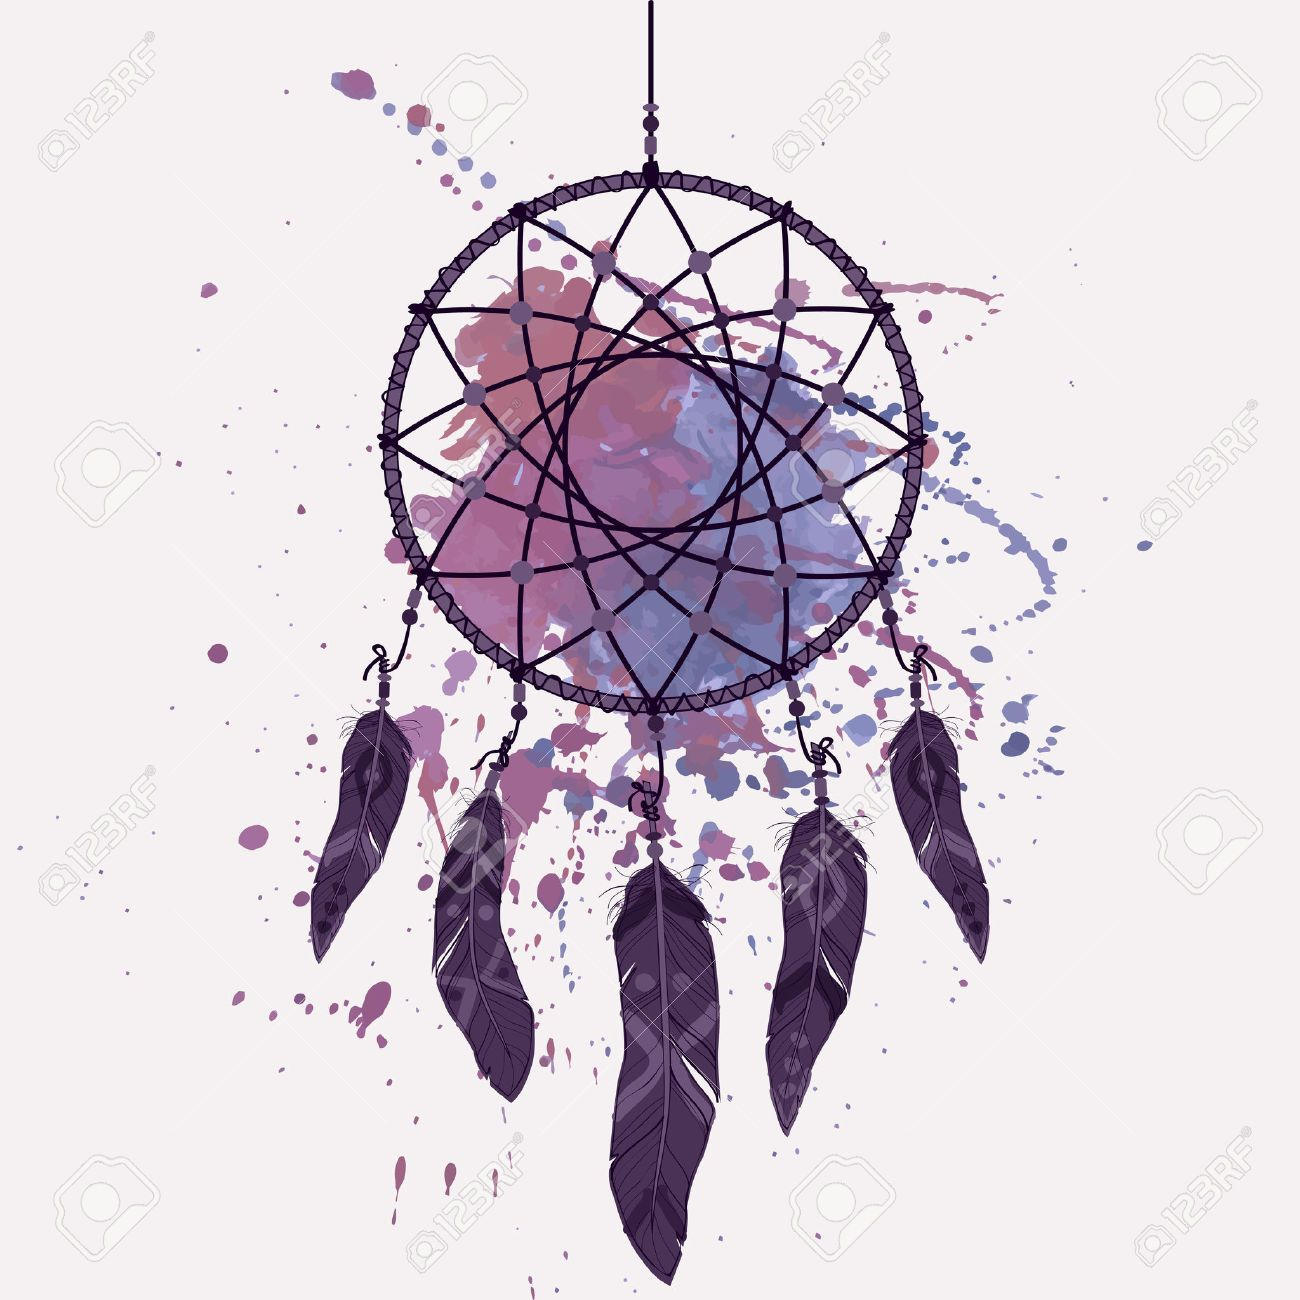 Watercolor dreamcatcher google search dreamcatcher for Dream catcher graphic